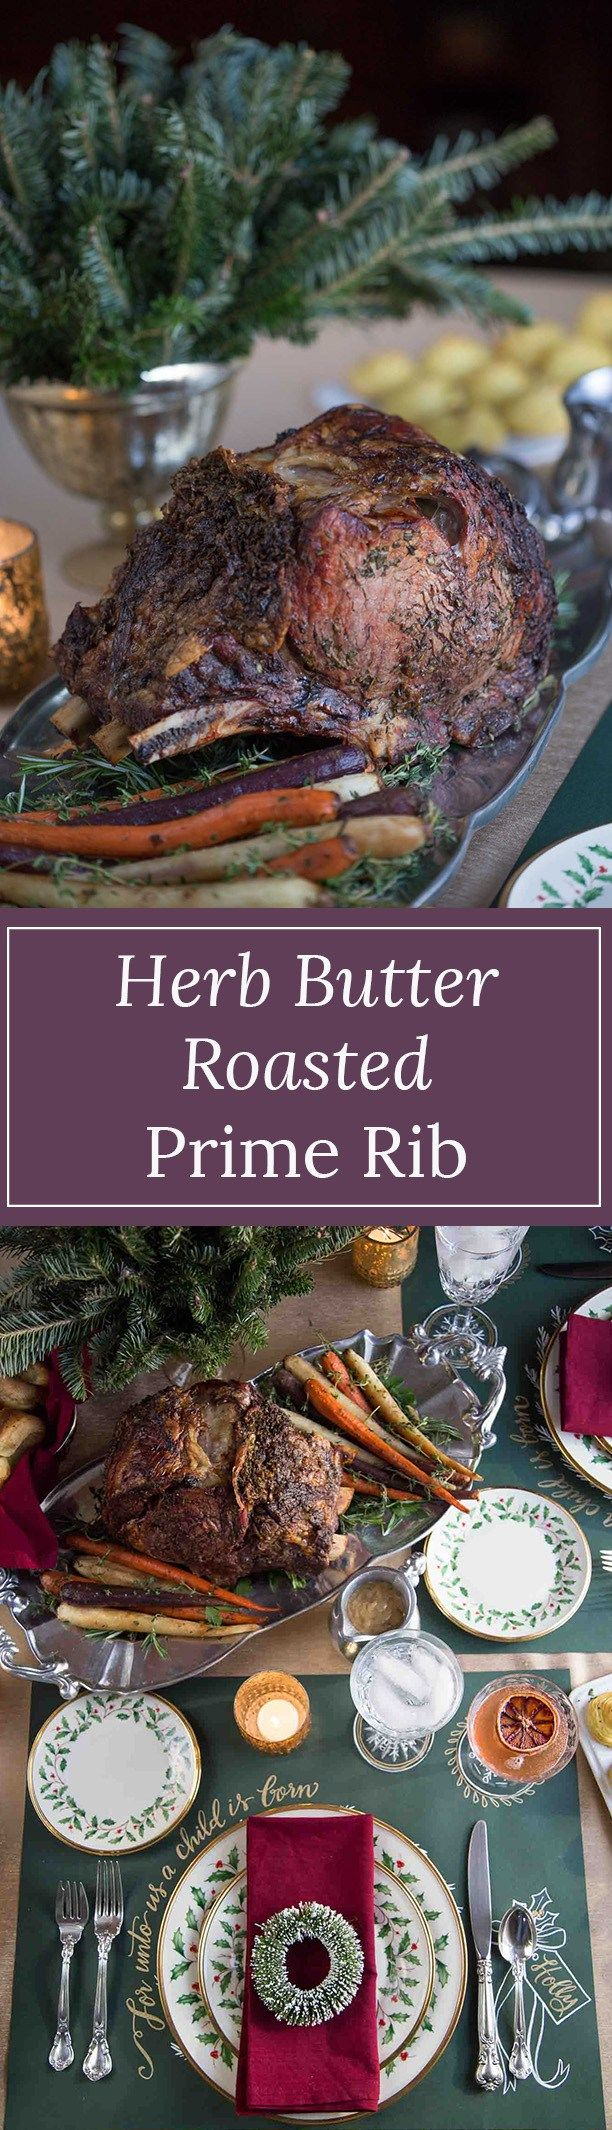 Herb Roasted Prime Rib is a show-stopping Christmas dinner entree. It's easy to make, and includes a guide on how to cook it to your desired temperature.